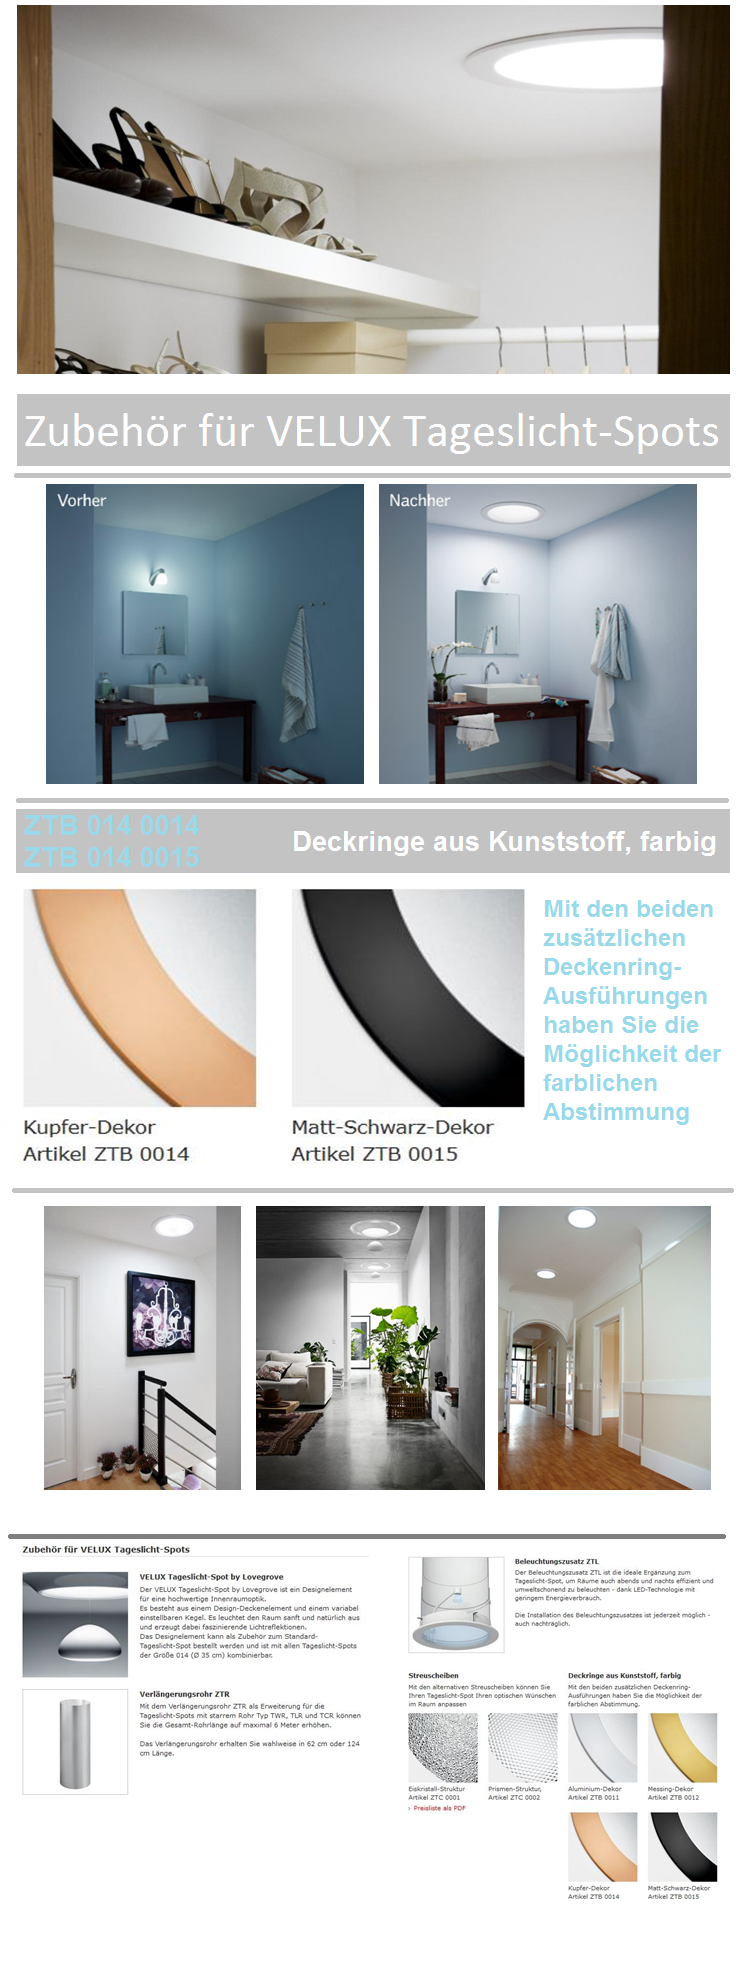 matt schwarz dekor artikel ztb 0015 velux tageslicht spot dachmax. Black Bedroom Furniture Sets. Home Design Ideas